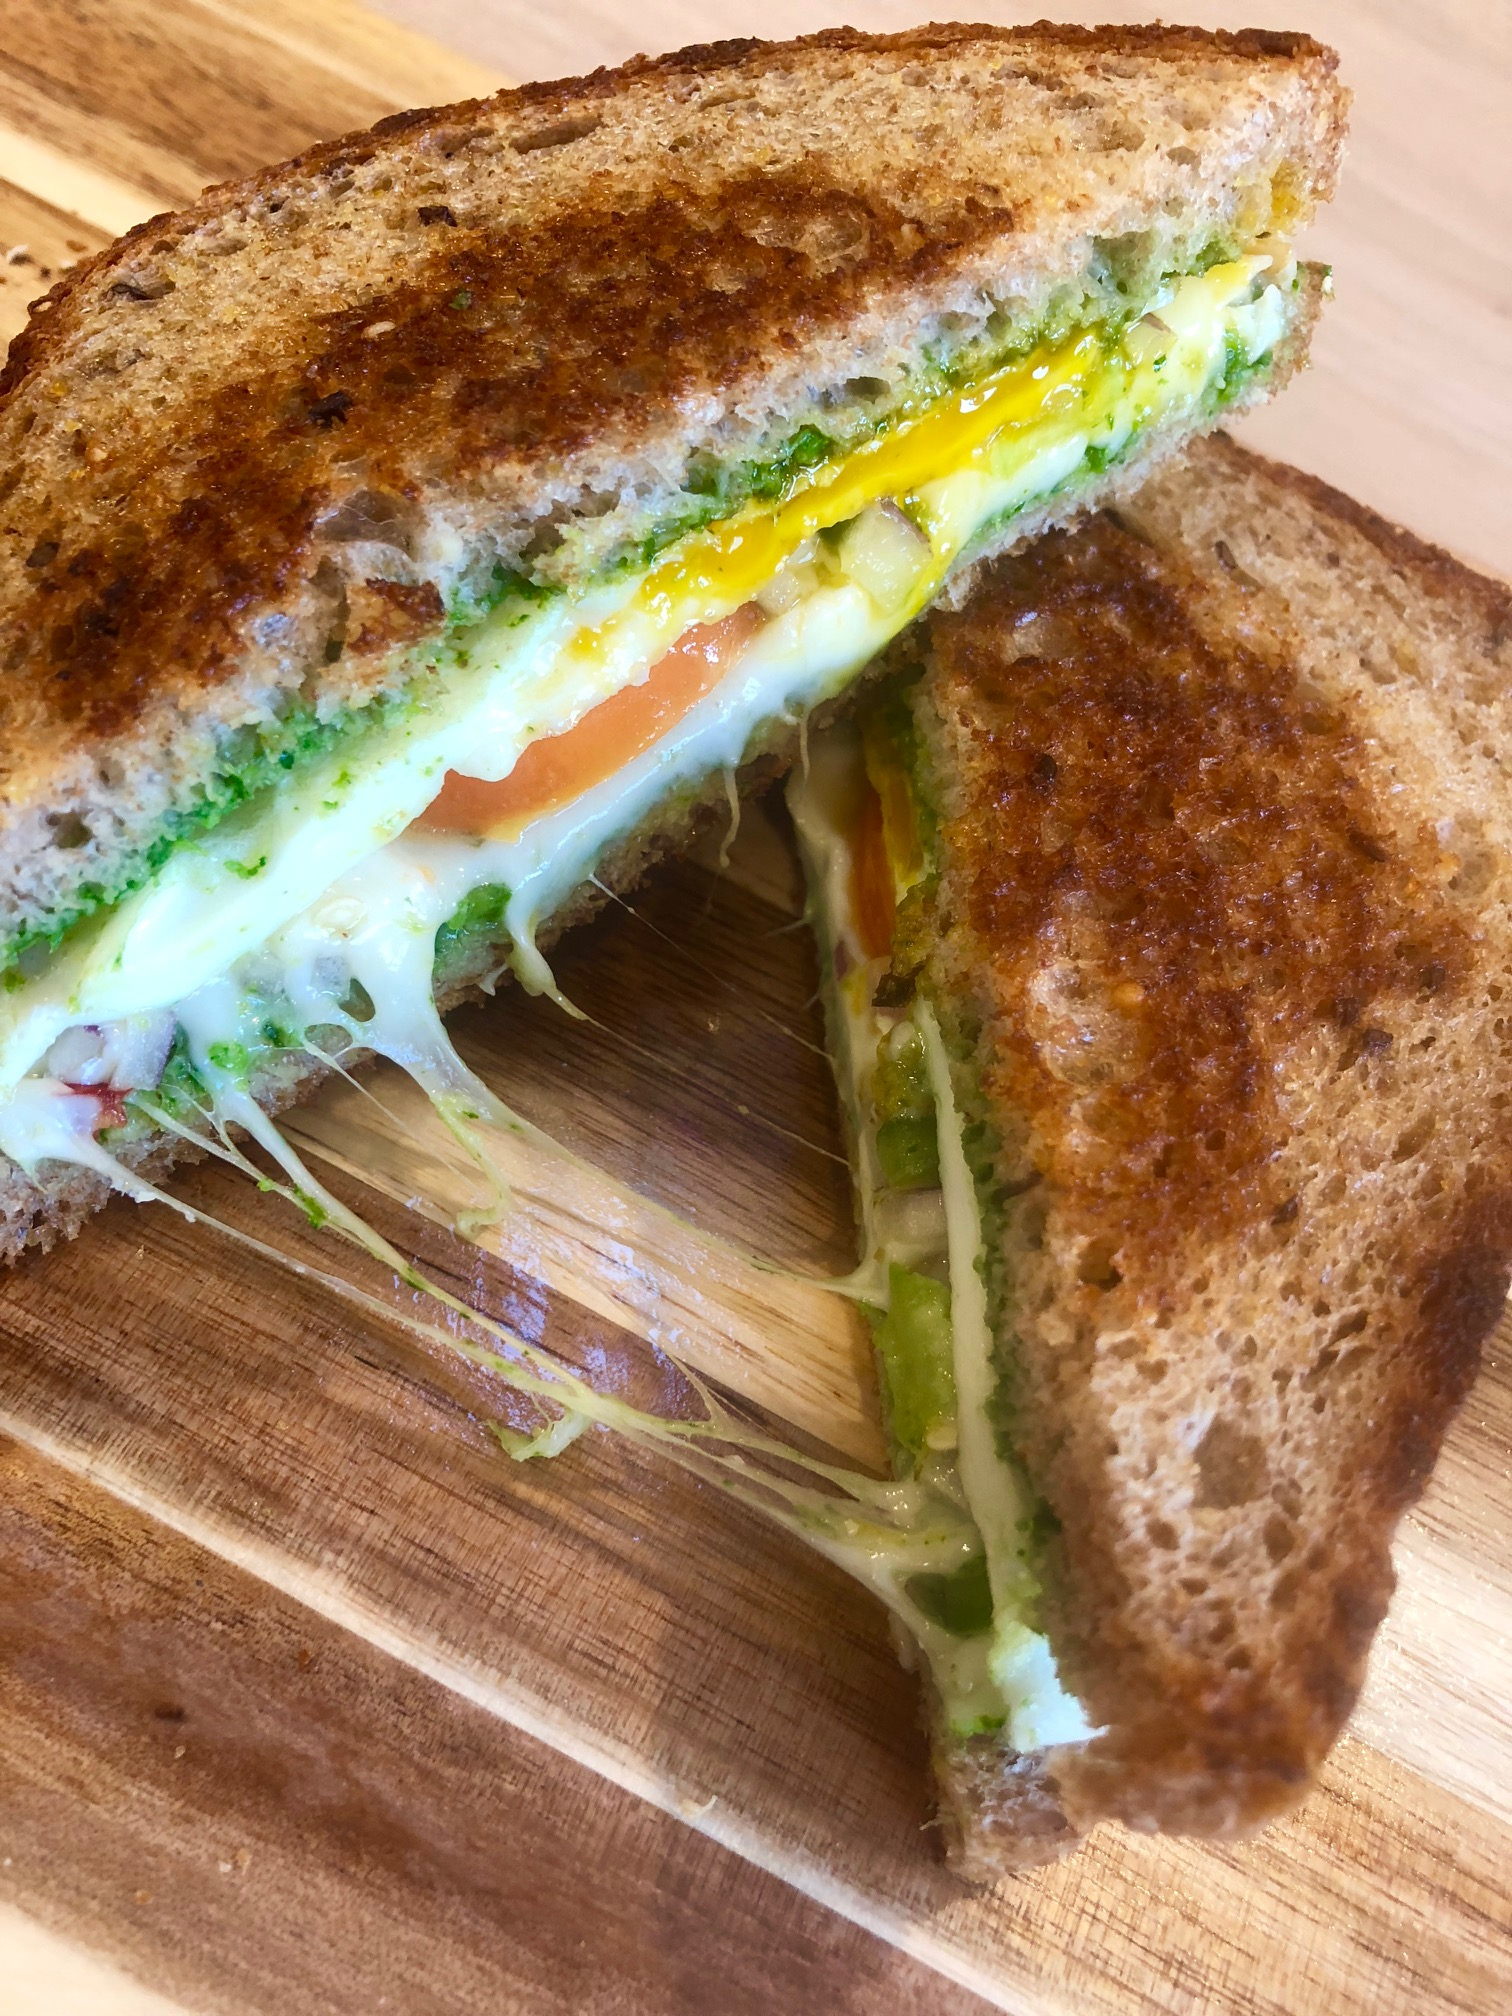 Chutney Grilled Cheese with a fried egg